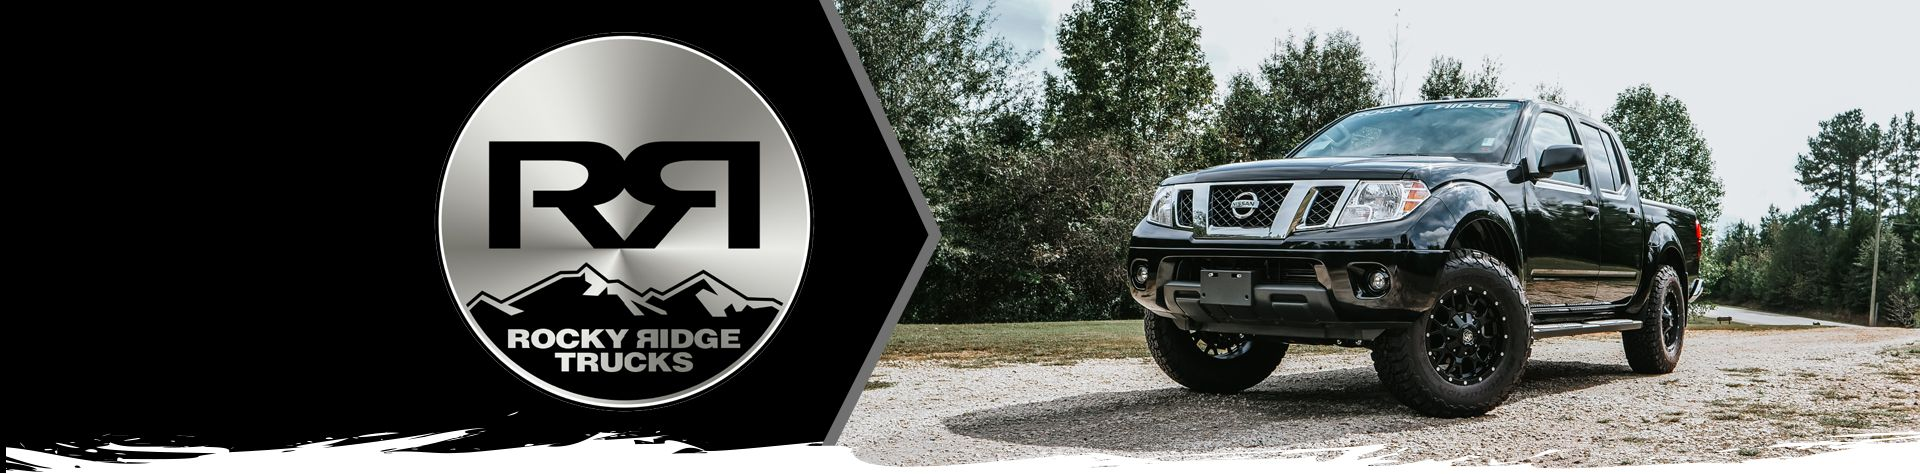 Nissan Lifted Trucks | Charleston SC | Serving Goose Creek